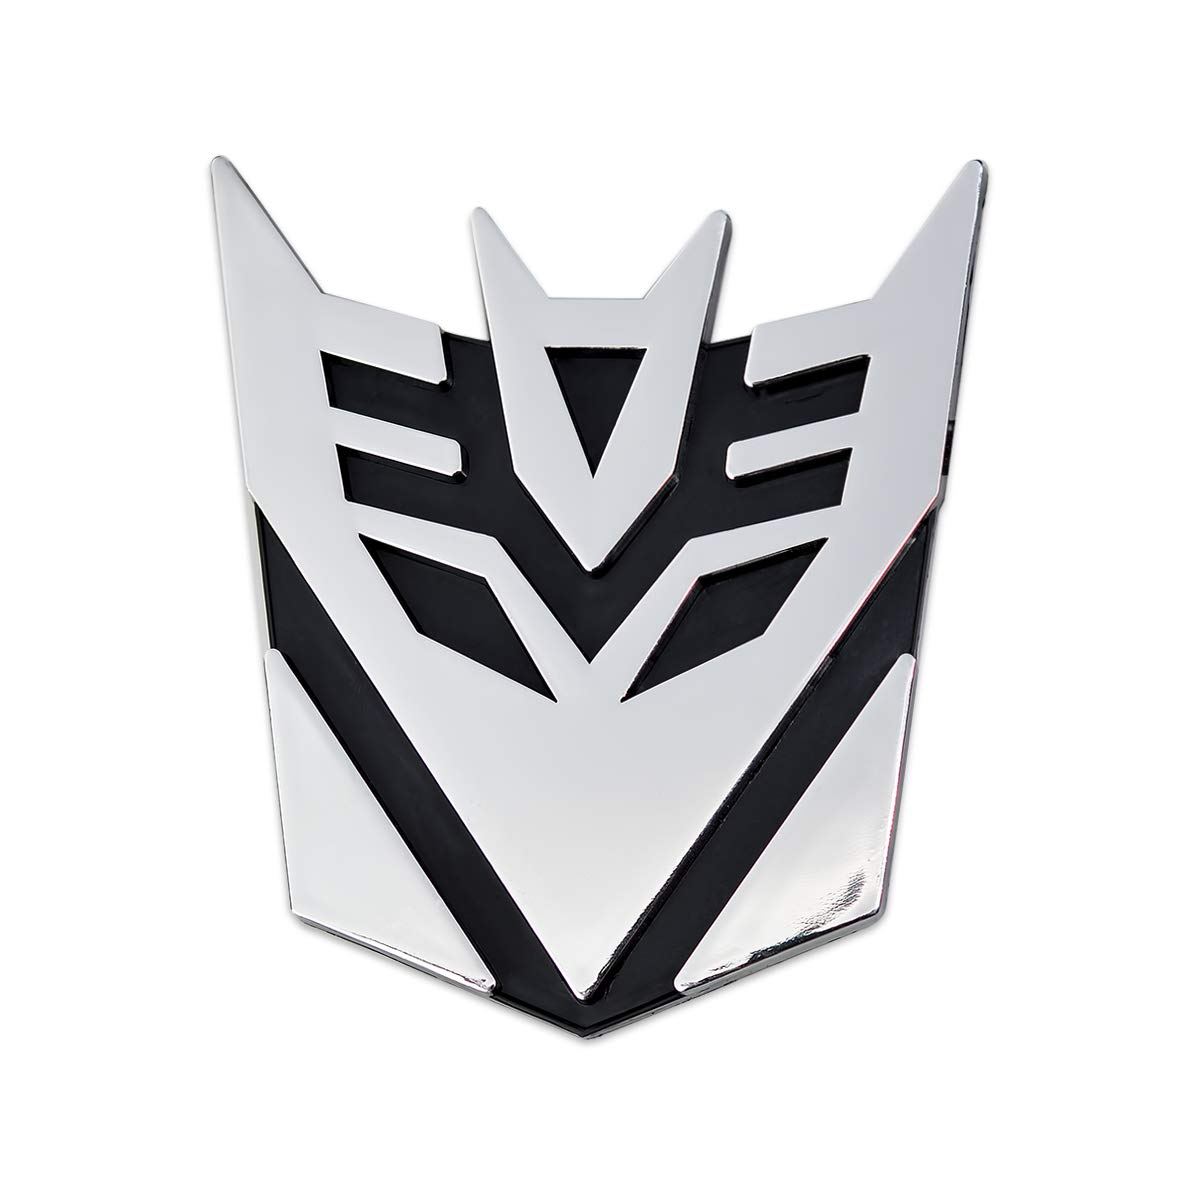 Decepticon Transformer Chrome Finish Auto Emblem 3 Tall The Masonic Exchange TME-EMB-00087-2